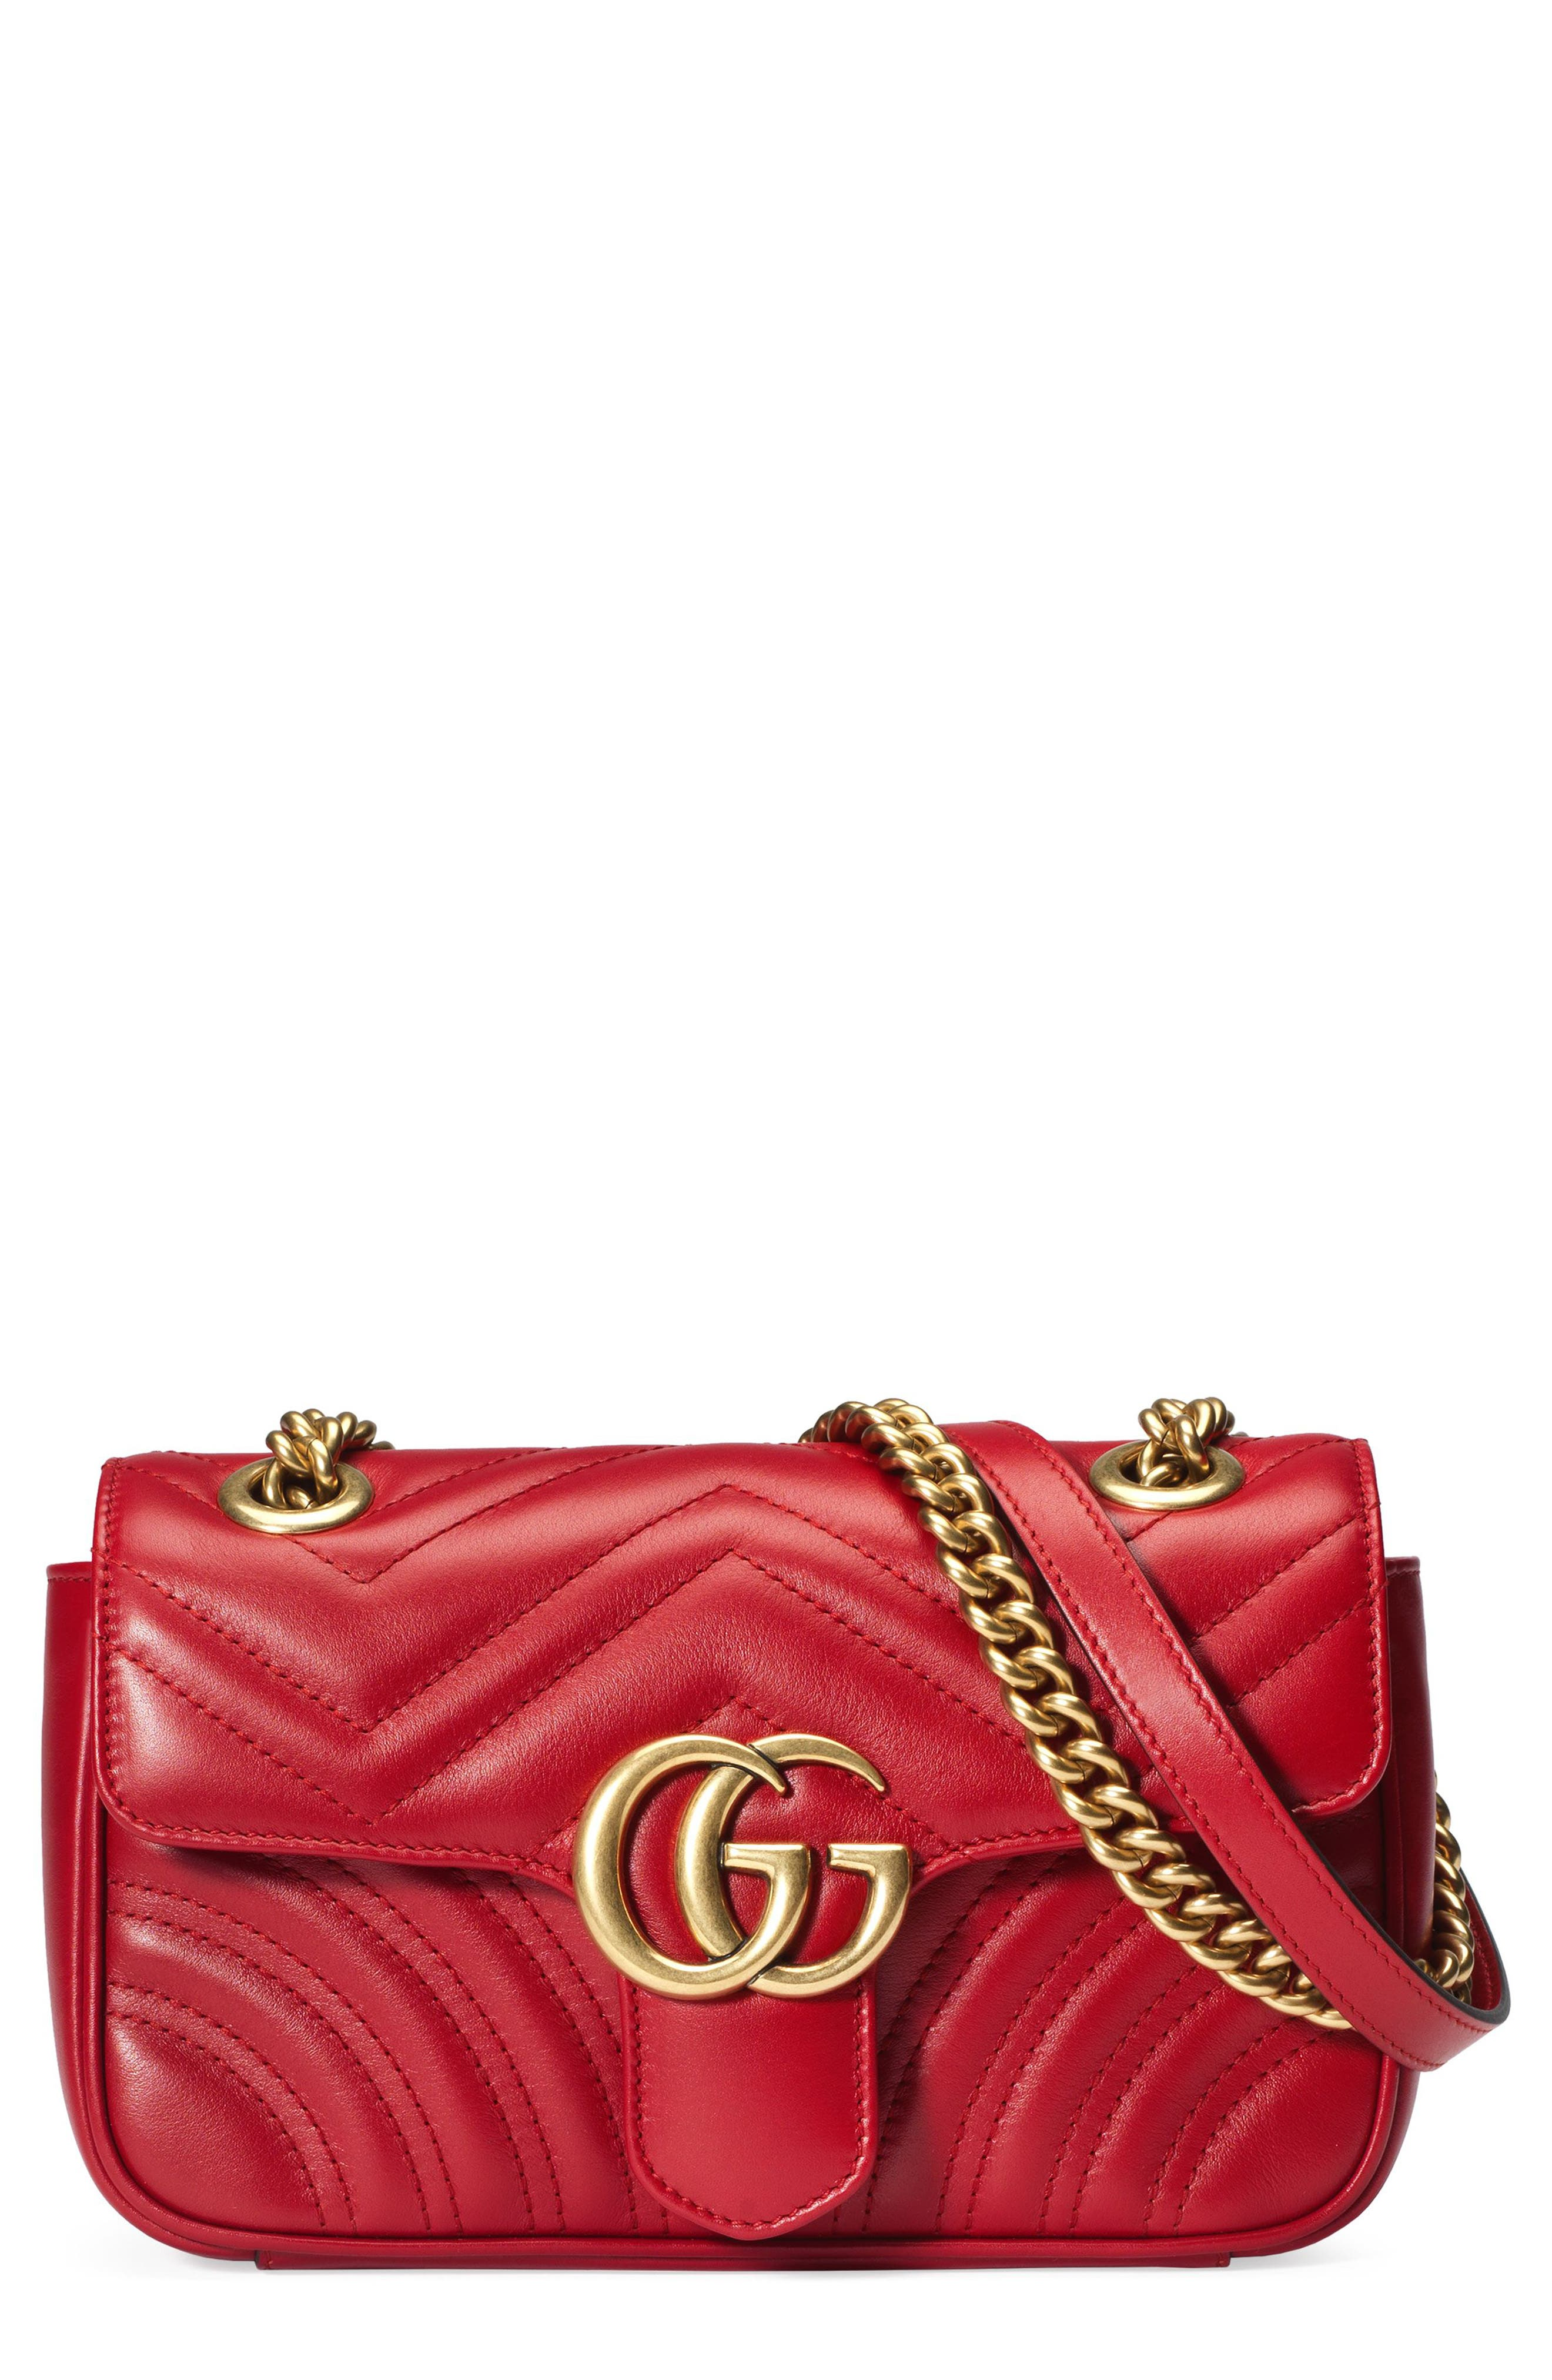 Gilded double-G hardware-inspired by a \\\'70s-era design from the Gucci archives-highlights the matelasse leather on a compact bag finished with a quilted heart. Style Name: Gucci Mini Gg 2.0 Matelasse Leather Shoulder Bag. Style Number: 5483650. Available in stores.